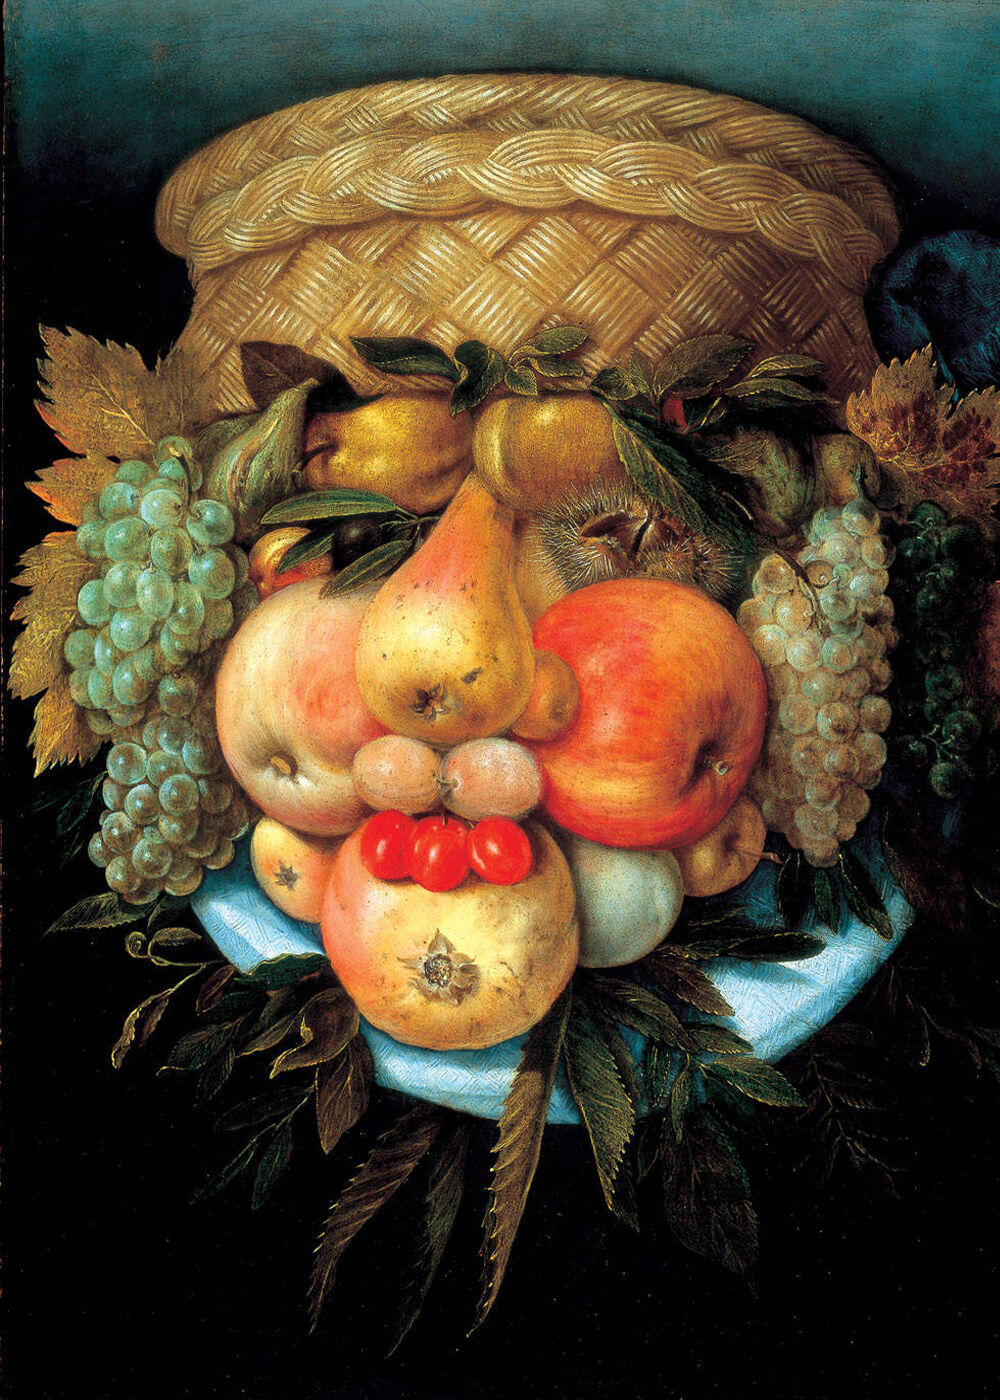 Giuseppe Arcimboldo, Fruit Basket, 16th Century. Image via Wikimedia Commons.